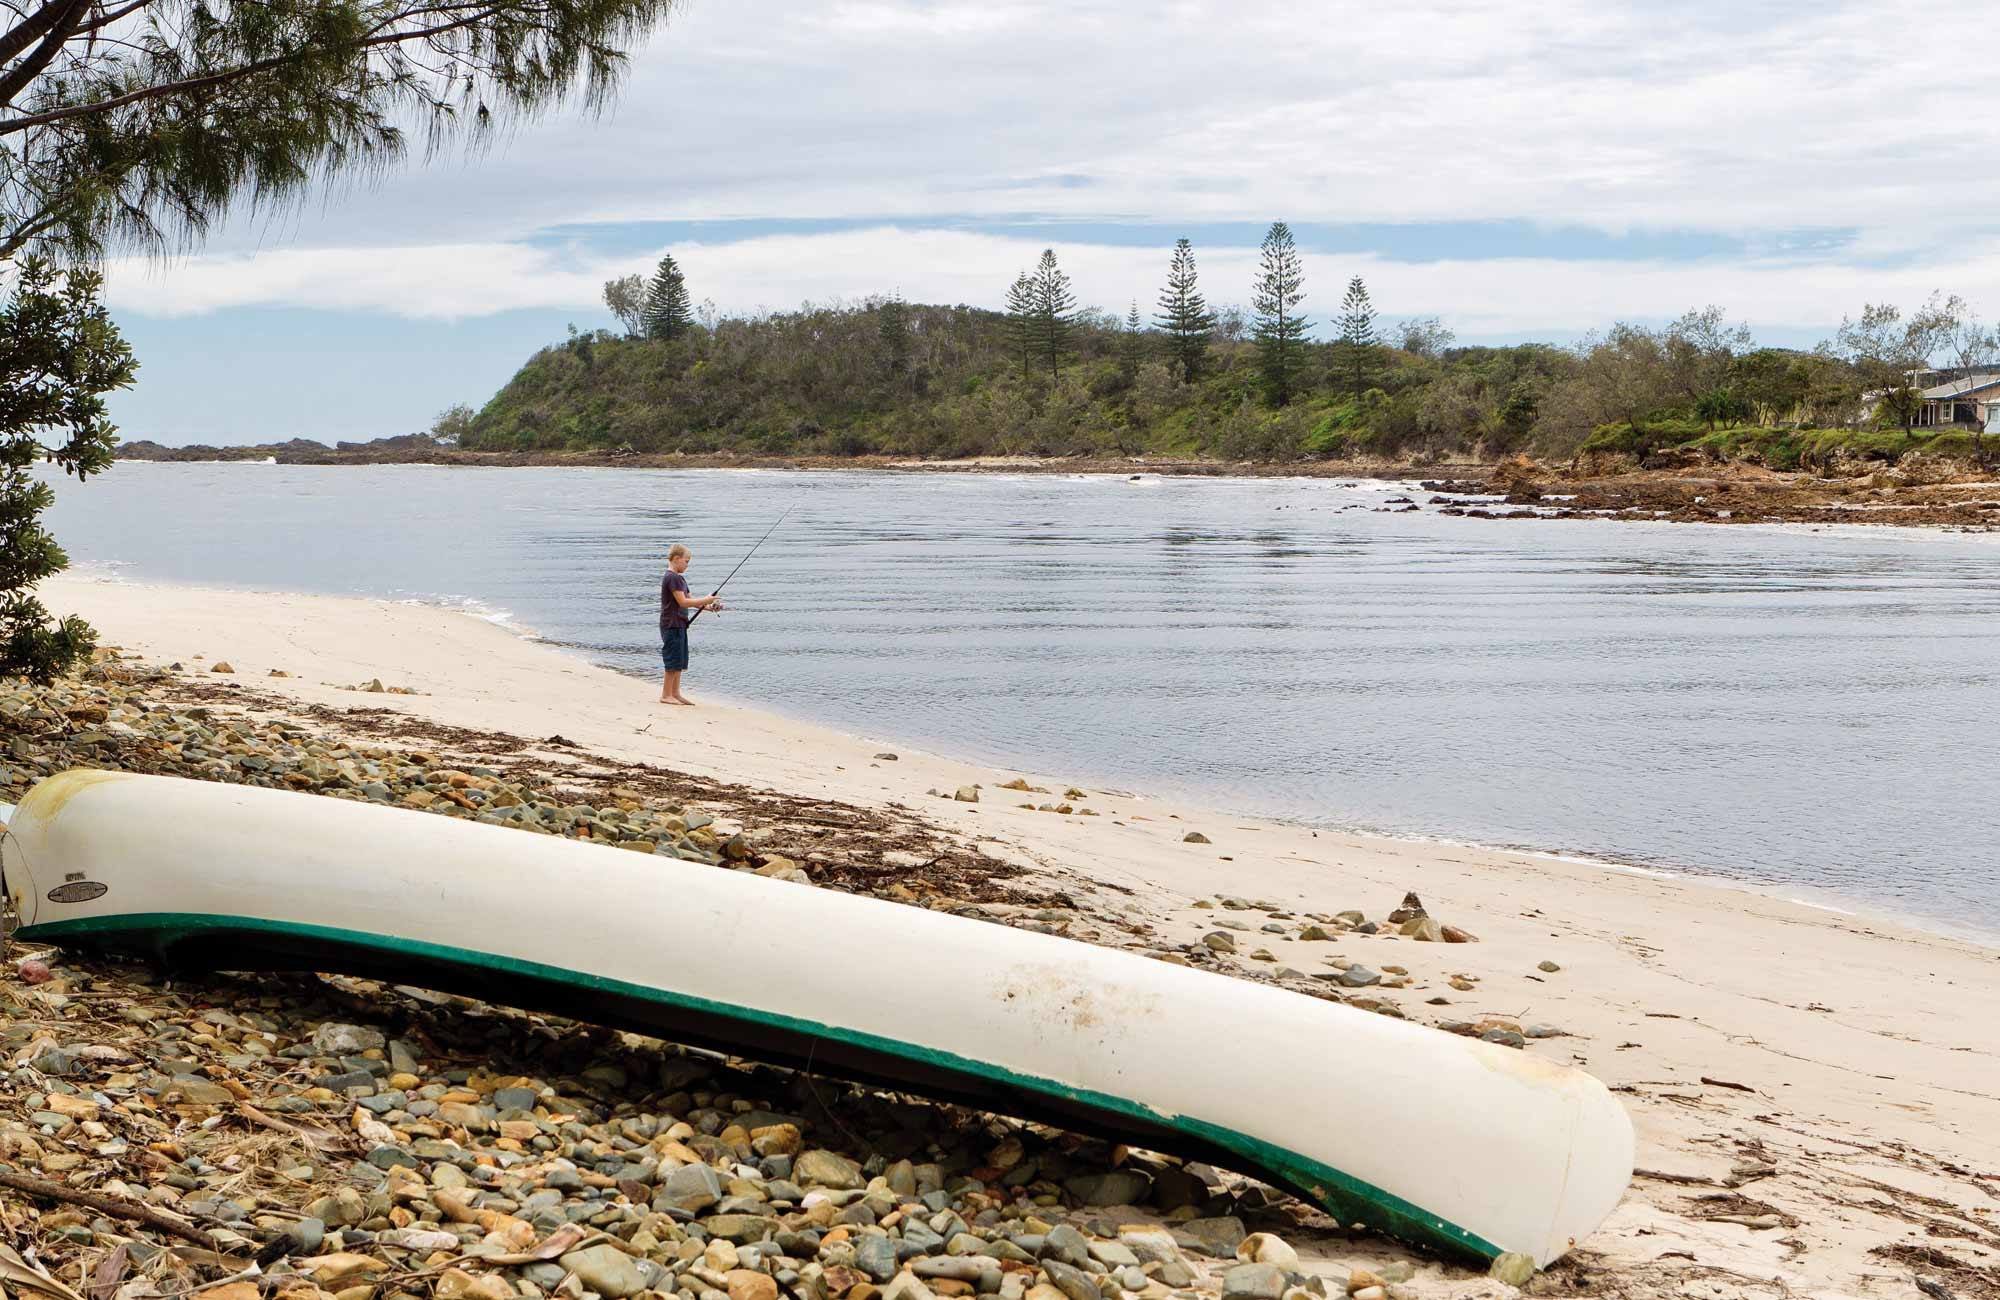 Fisherman and kayak at Sandon River Camping Area. Photo: Rob Cleary